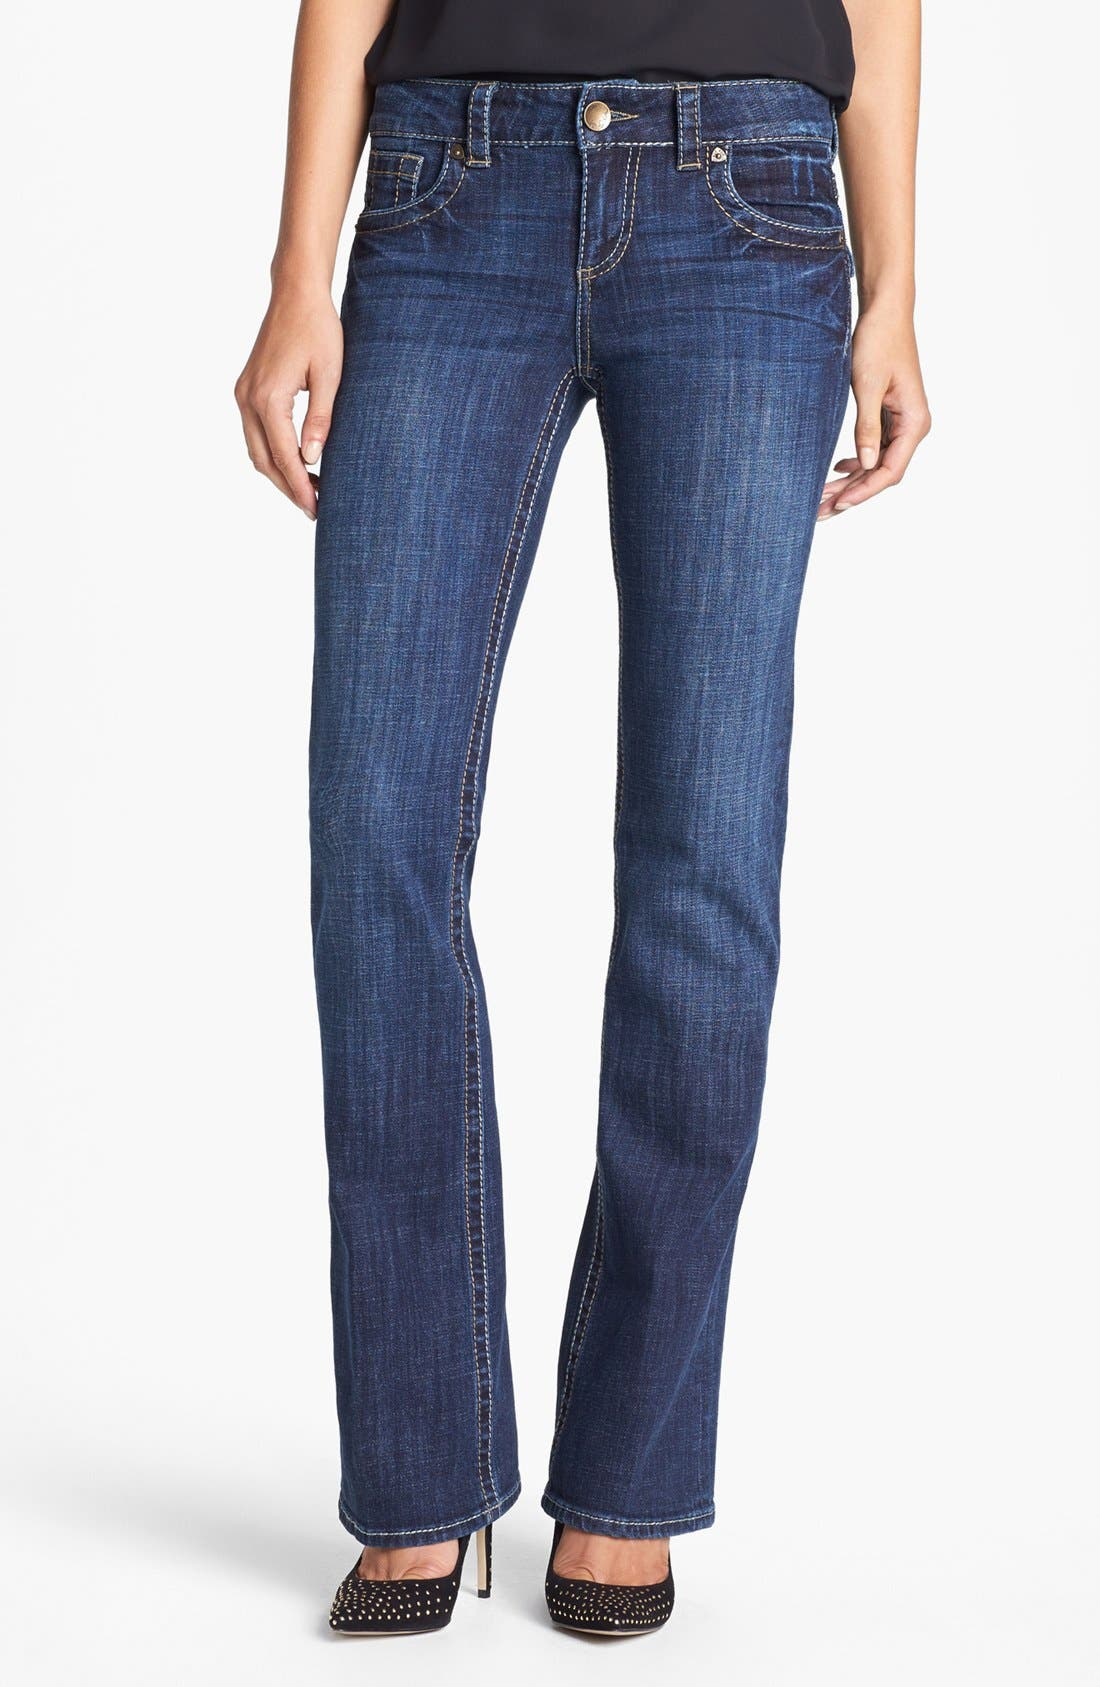 KUT FROM THE KLOTH 'Natalie' Bootcut Jeans